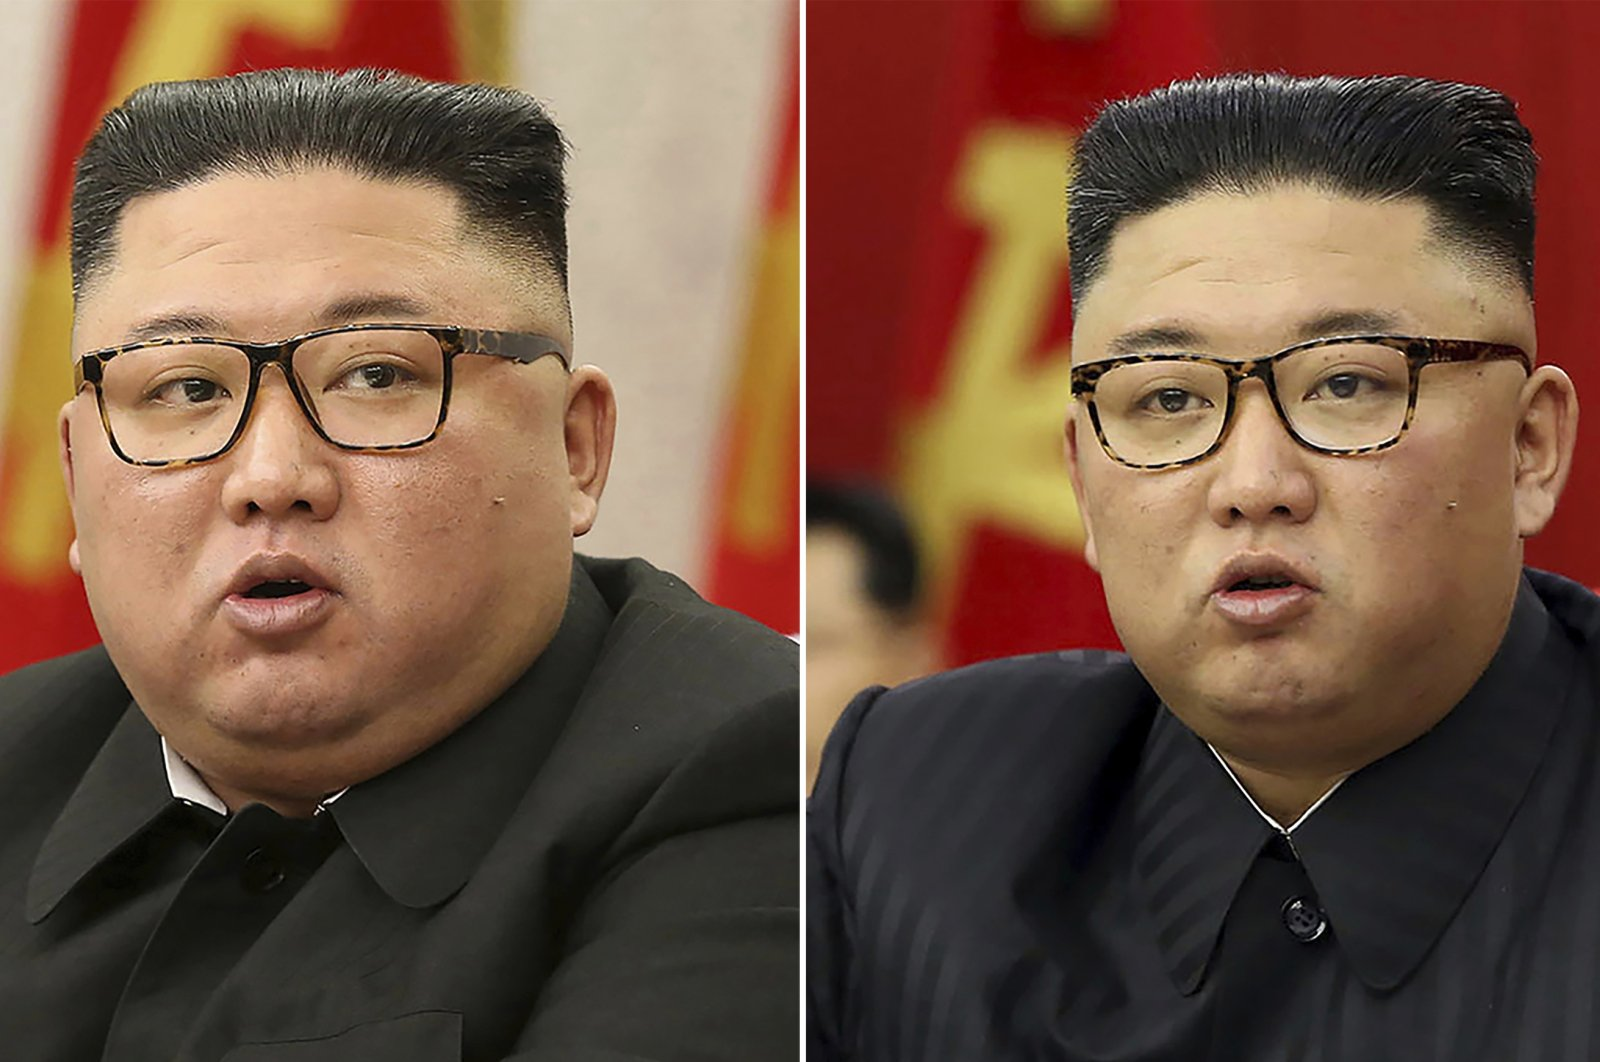 This combination of file photos provided by the North Korean government, shows North Korean leader Kim Jong Un at Workers' Party meetings in Pyongyang, North Korea, on Feb. 8, 2021, left, and June 15, 2021. (Korean Central News Agency/Korea News Service via AP)